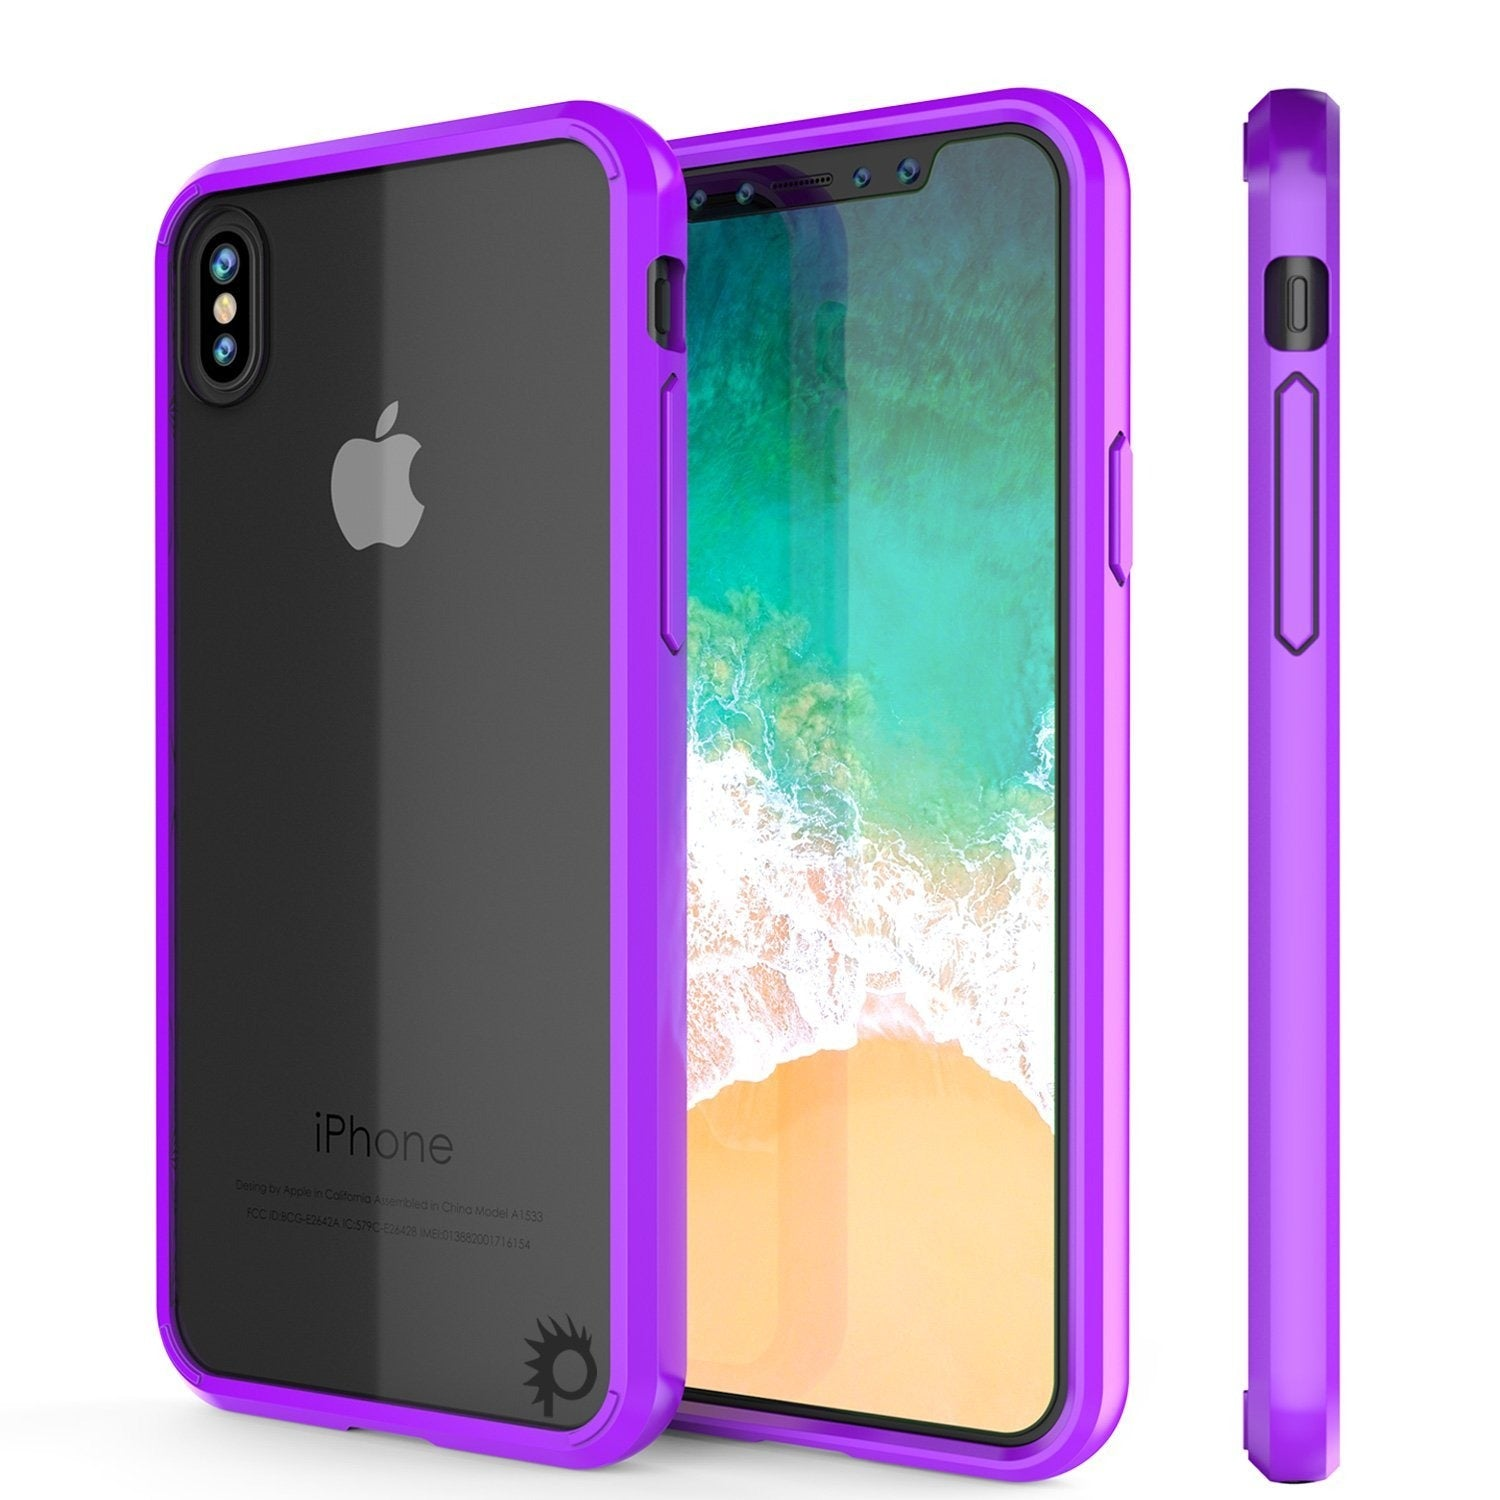 iPhone XR Case, PUNKcase [Lucid 2.0 Series] [Slim Fit] Armor Cover [Purple]